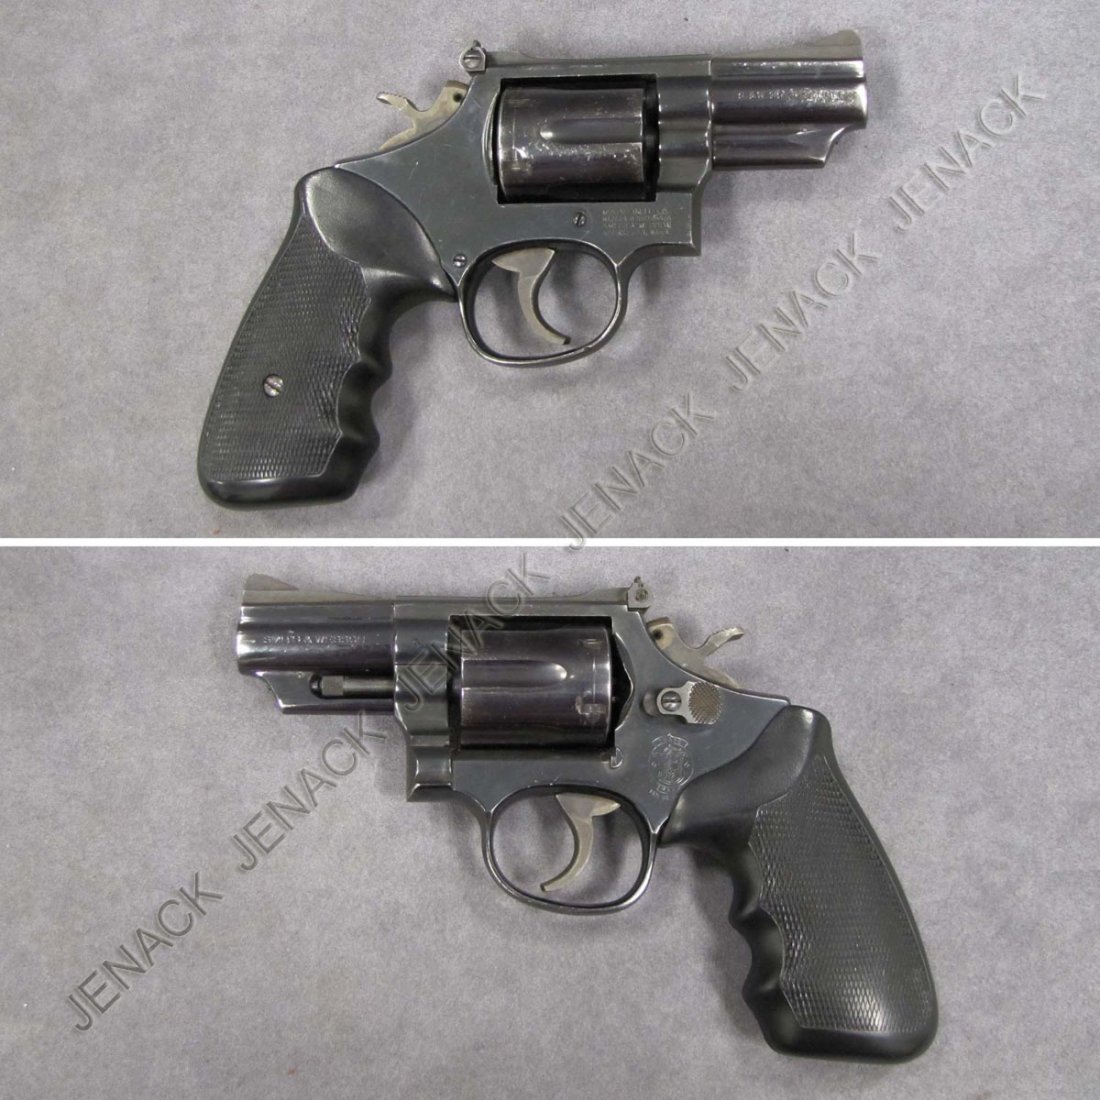 11: **RESTRICTED** SMITH & WESSON MOD 19-5 .357 MAG